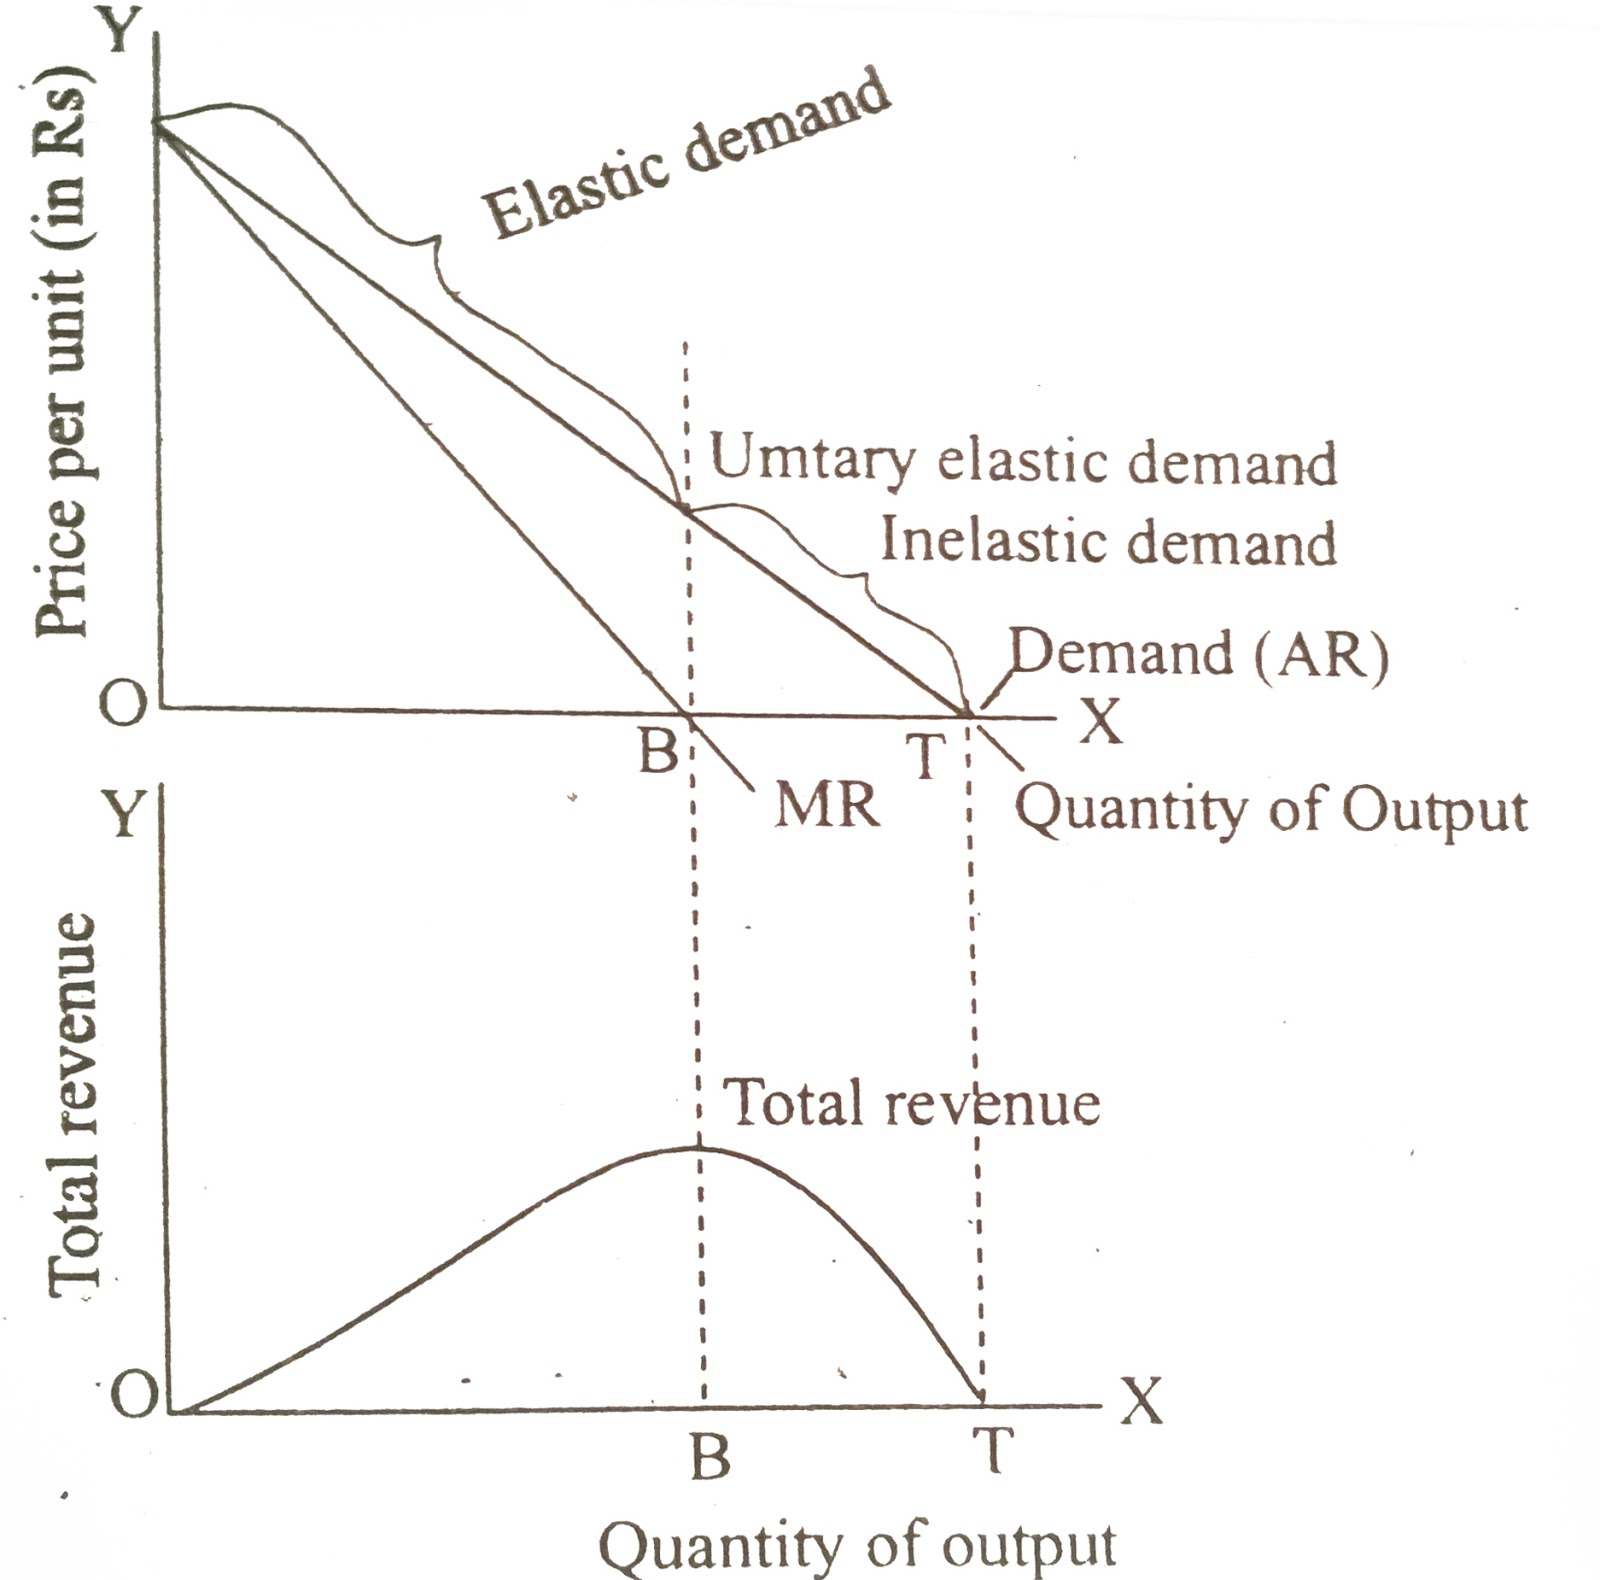 Project Management: Relationship of Price Elasticity of ...